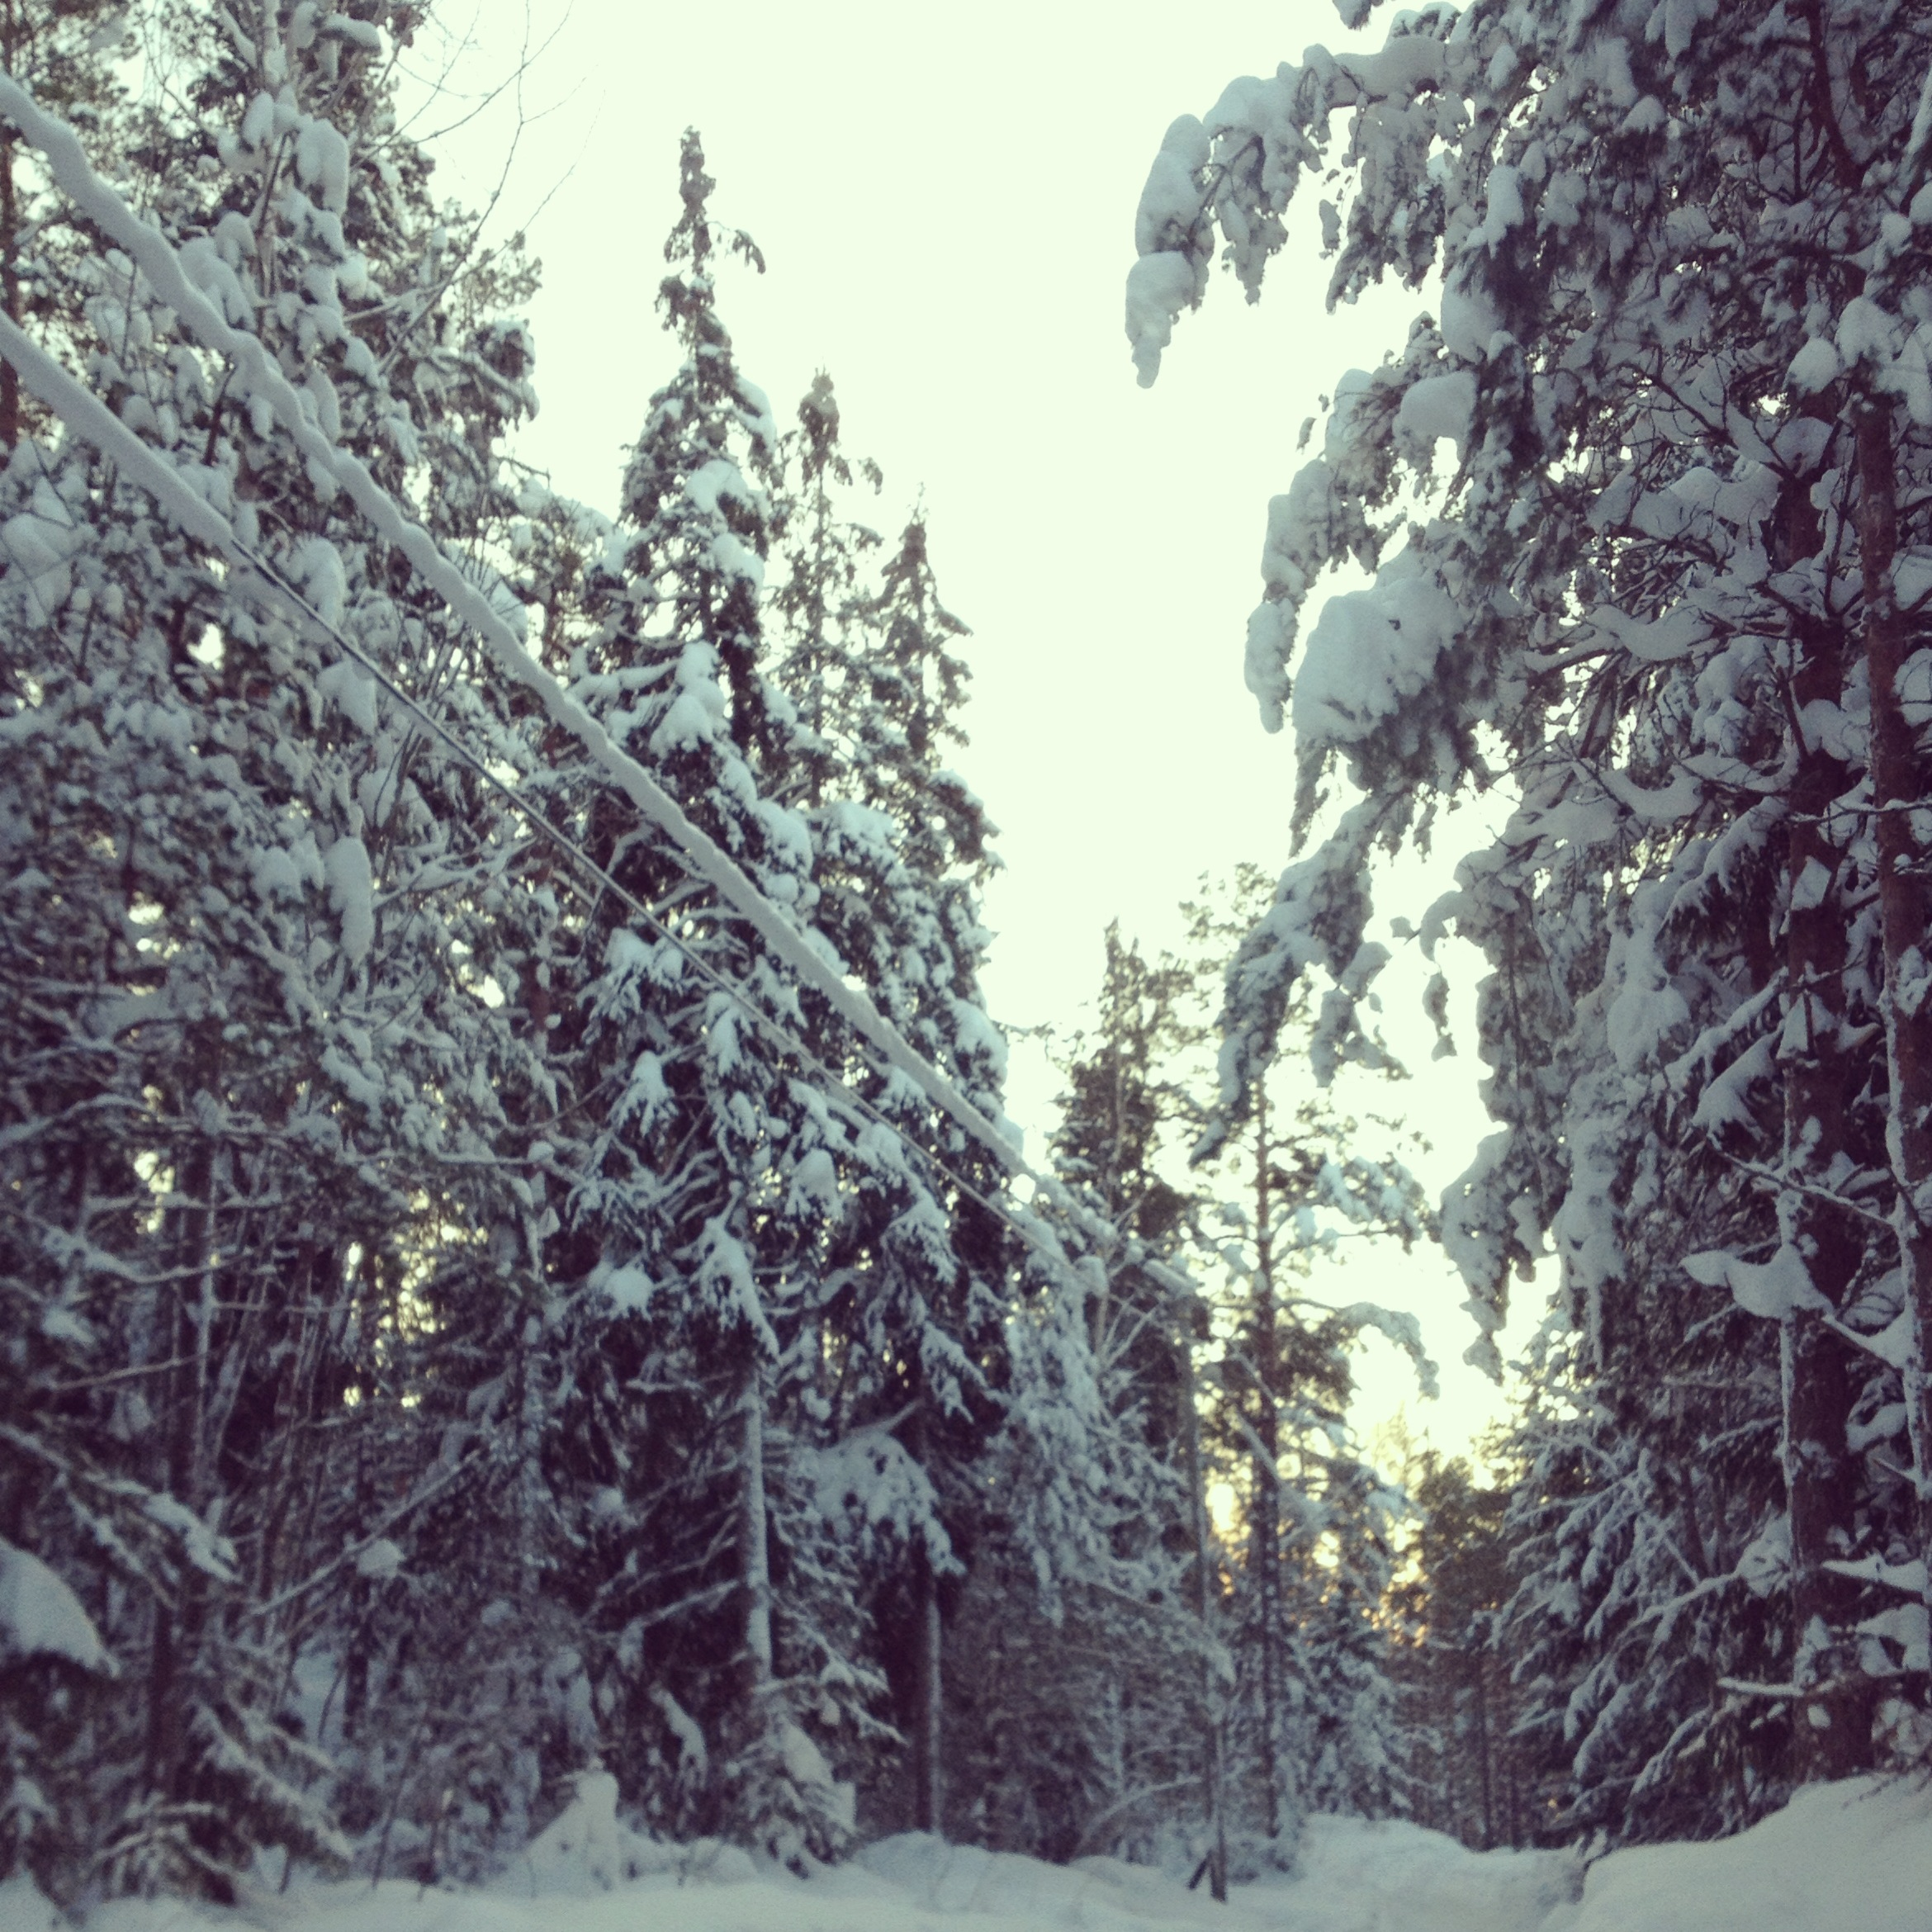 """""""The forests in Finland. It does not matter if it is winter or summer, the forest is always calm and silent. The only place where you can truly hear your own thoughts."""" Jonna Saarinen"""